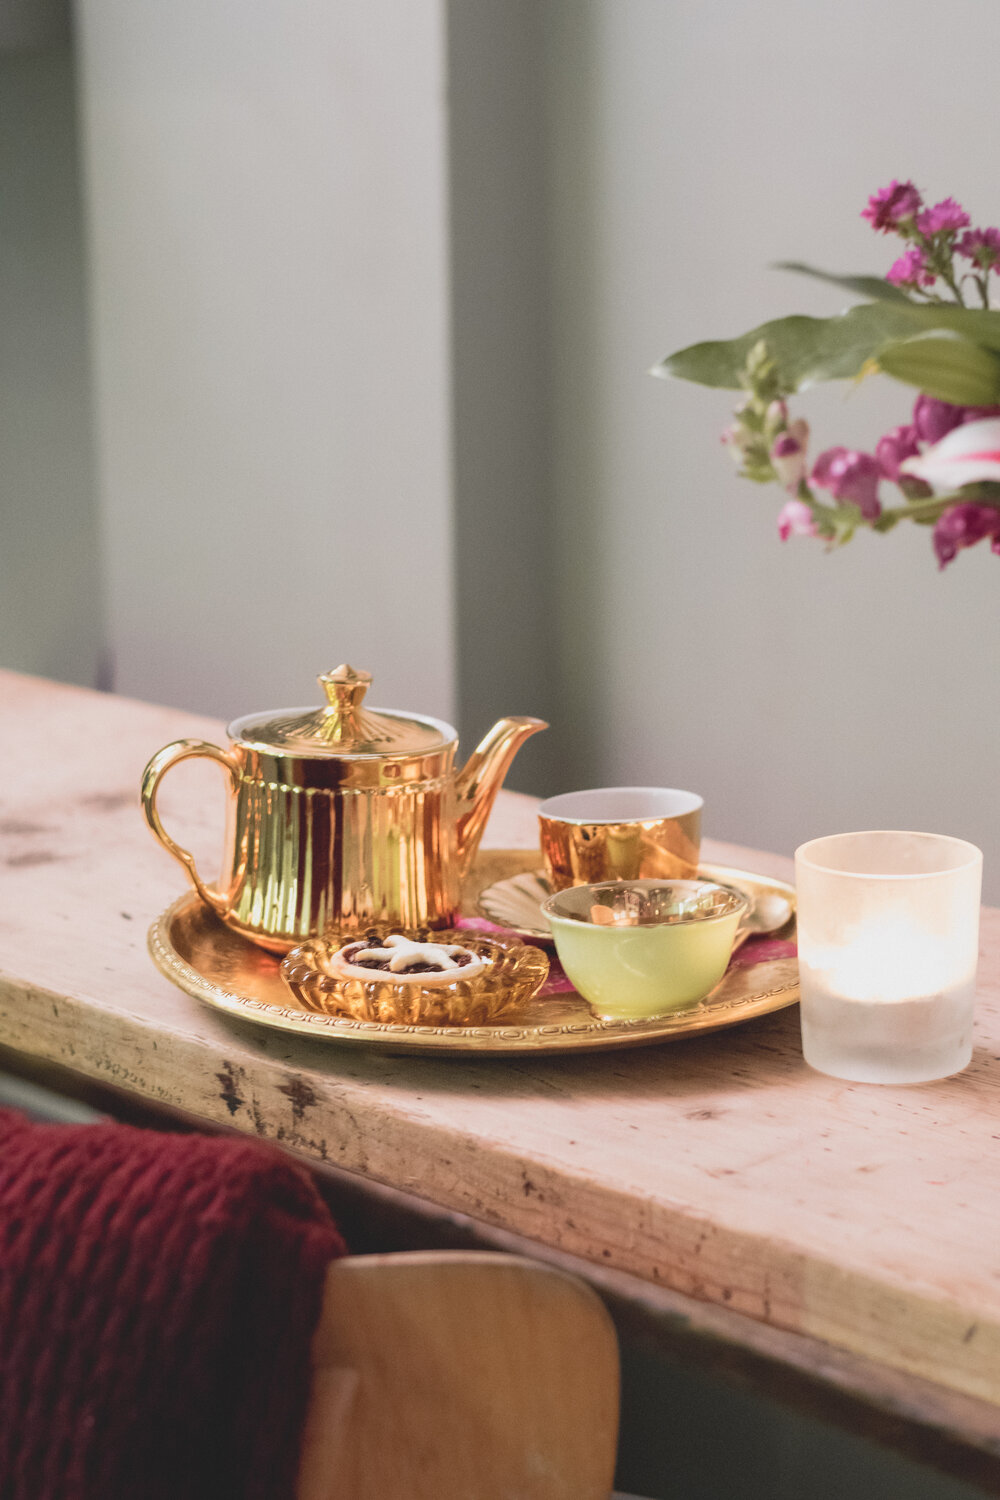 A golden teapot and cup on a tray with a homemade mince pie, scarf and candle